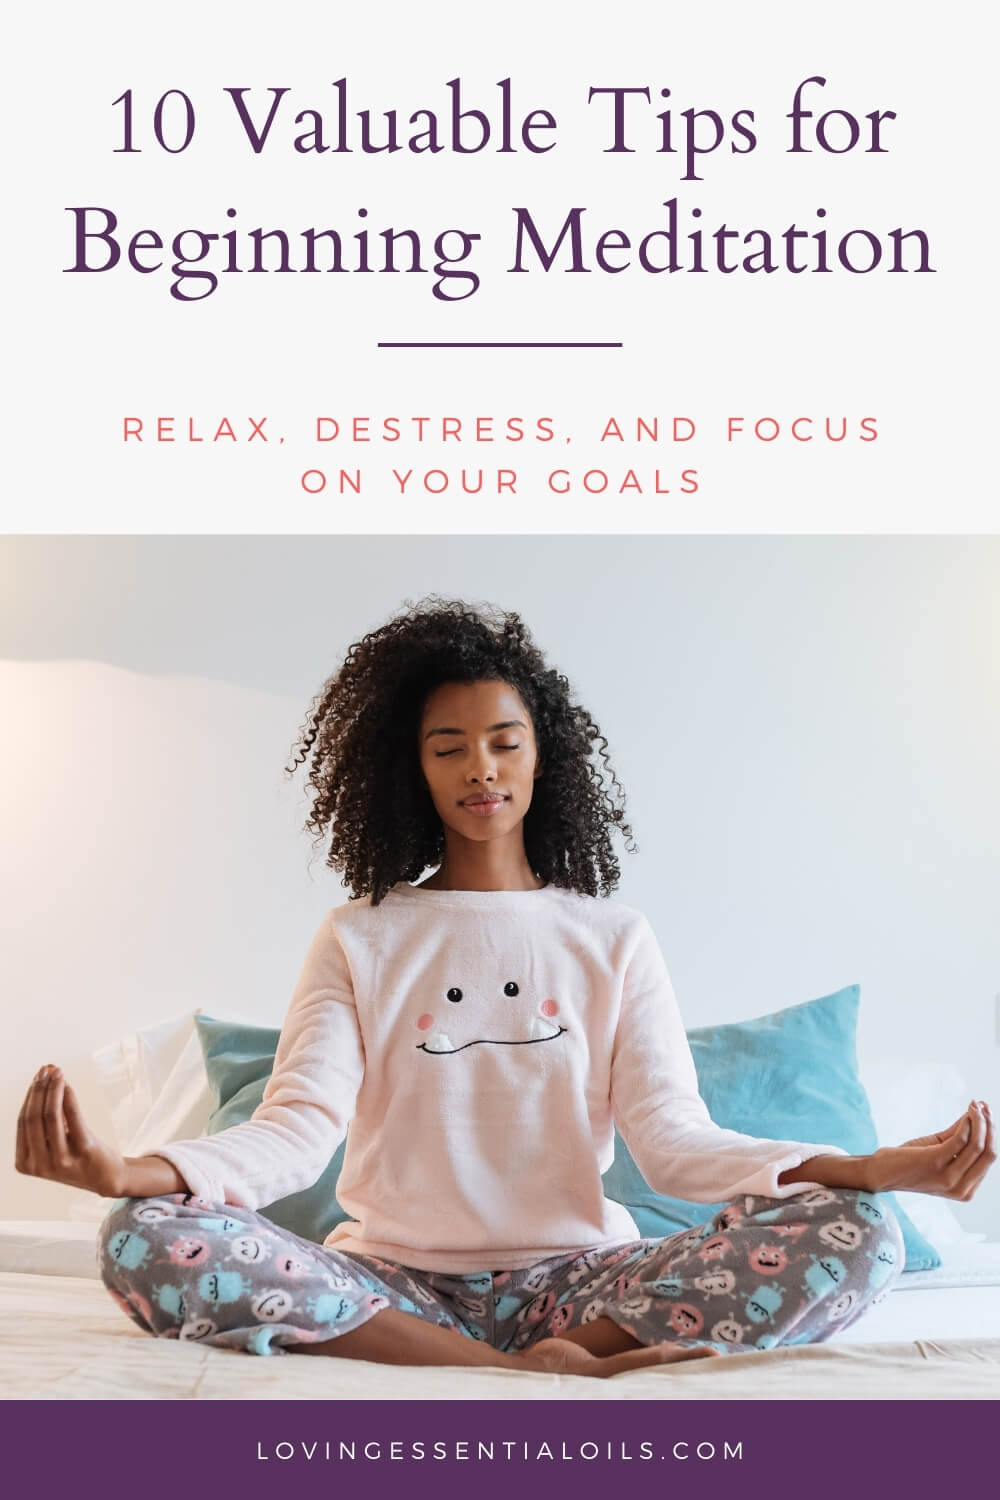 Starting Meditation for Beginners by Loving Essential Oils